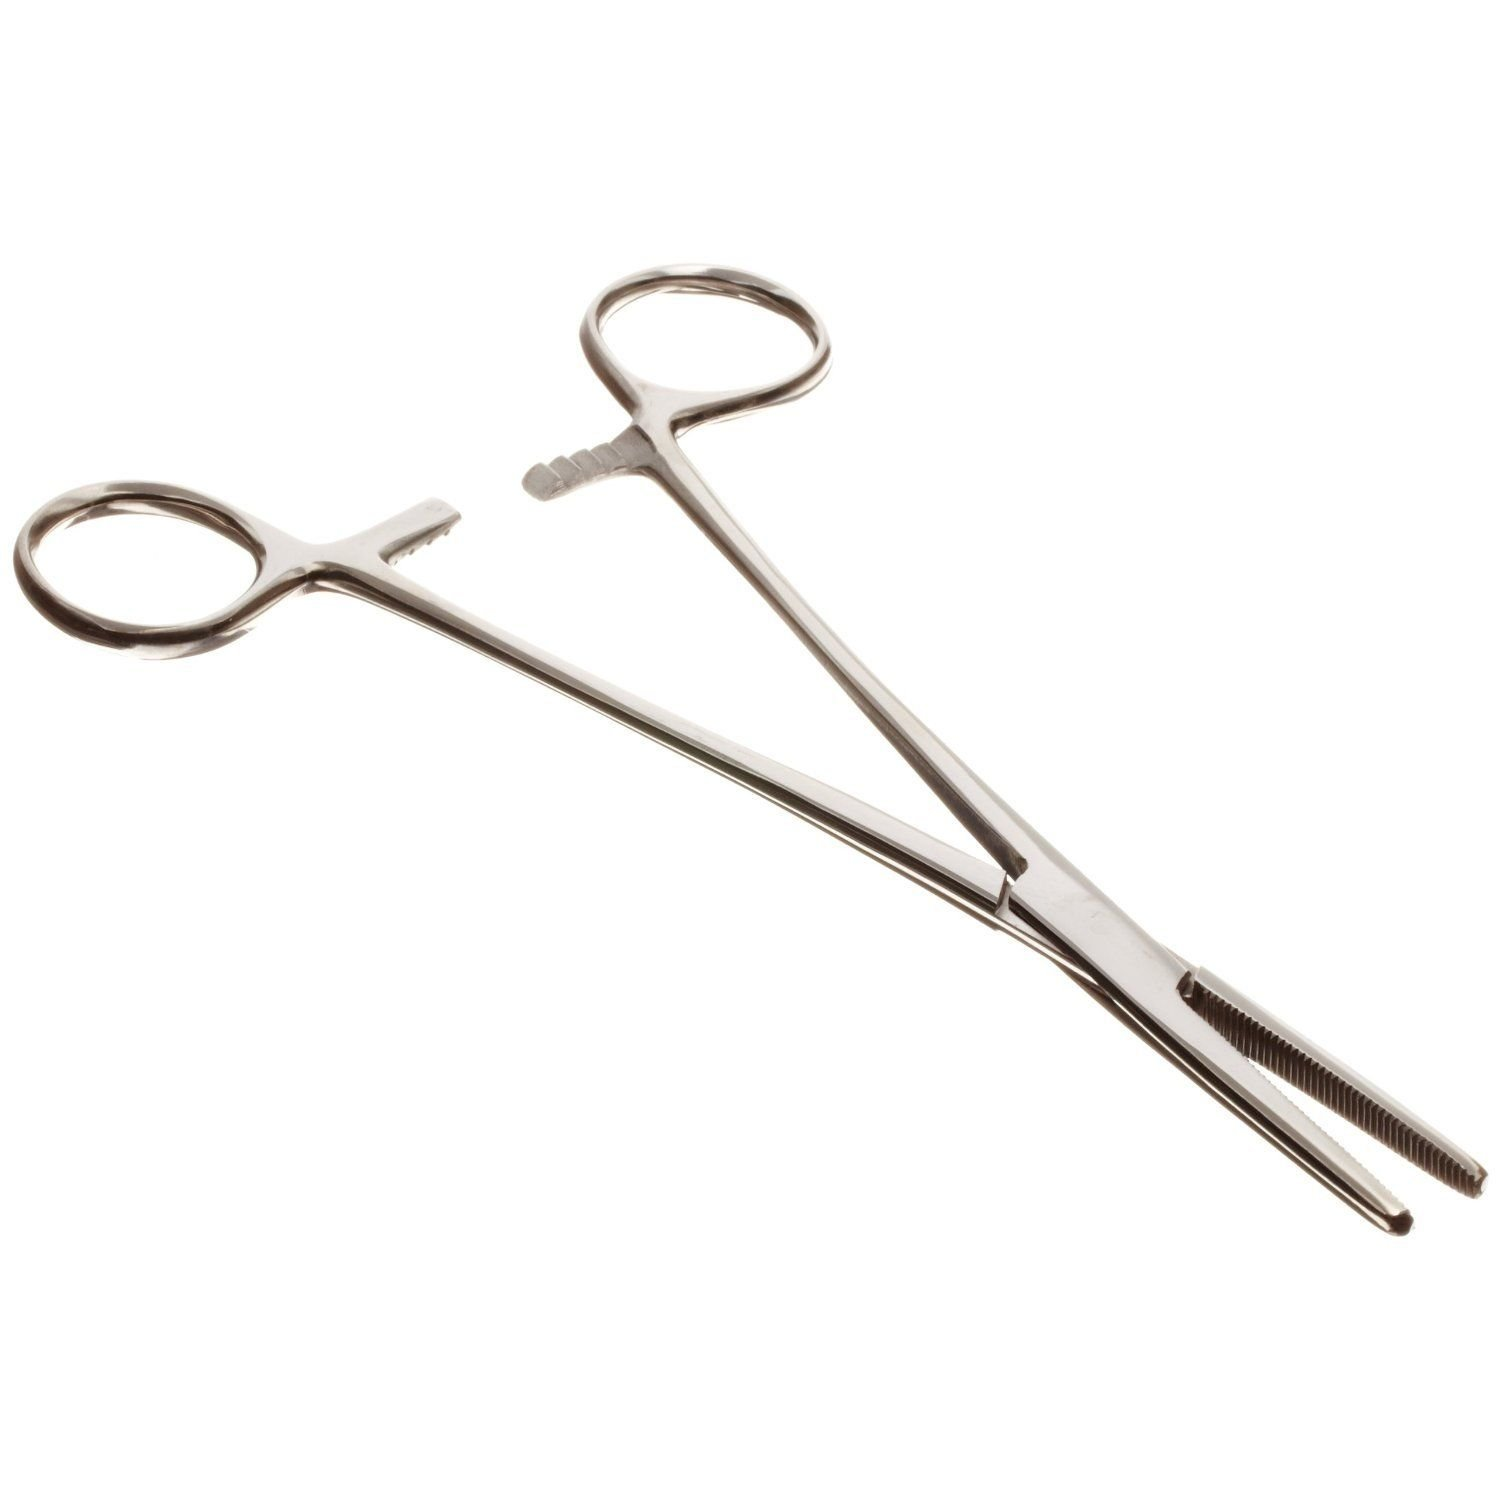 Set of 2 Pairs 8'' Straight Hemostat Forceps Locking Clamps - Stainless Steel